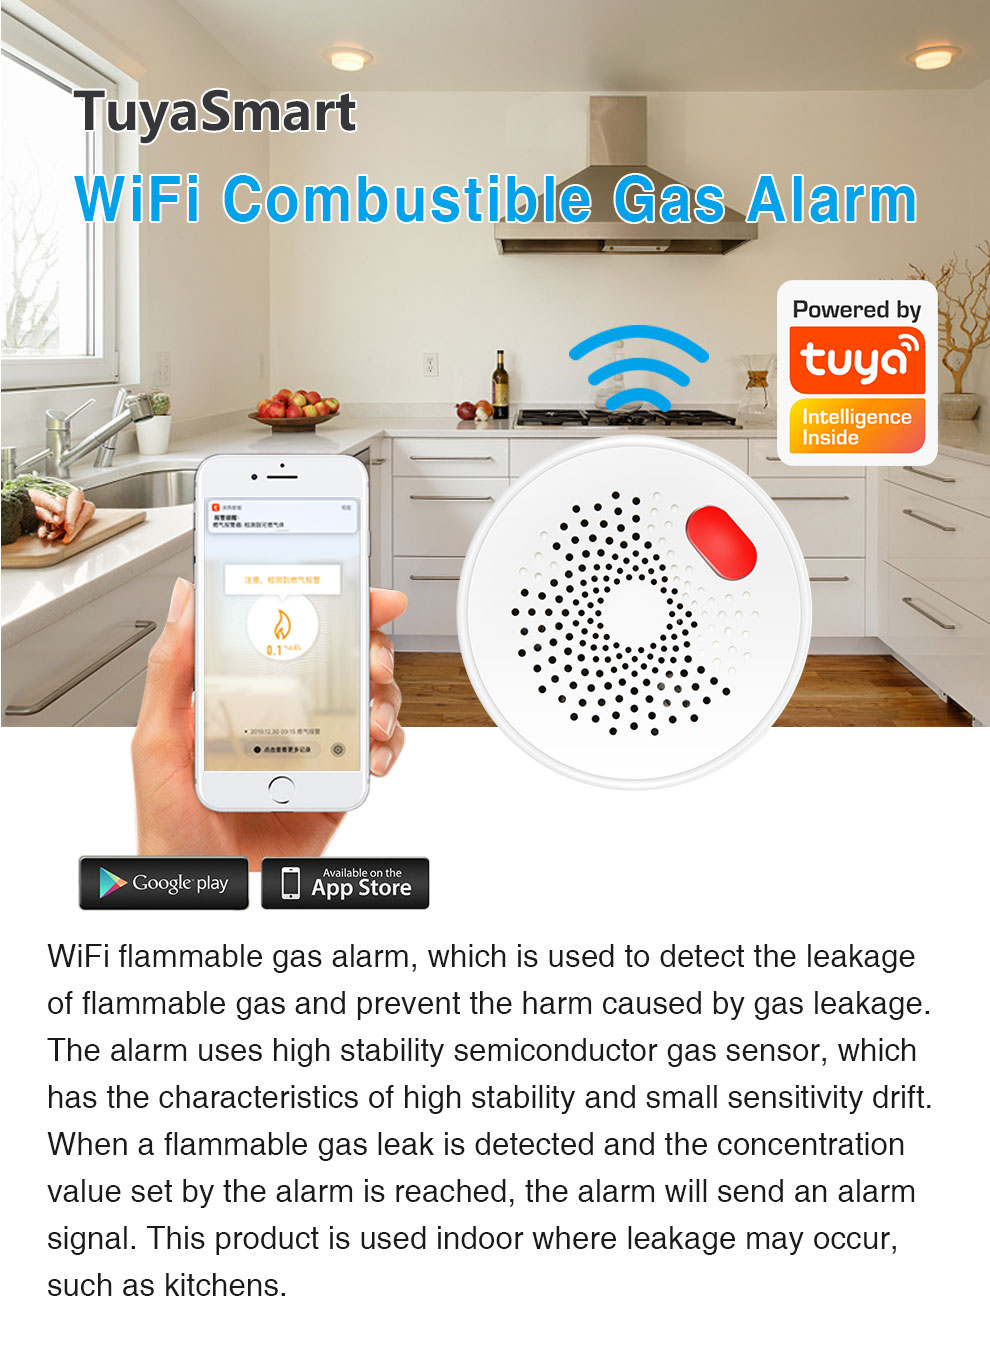 Enerna IoTech WiFi Smart Combustible Gas Leakage Alarm